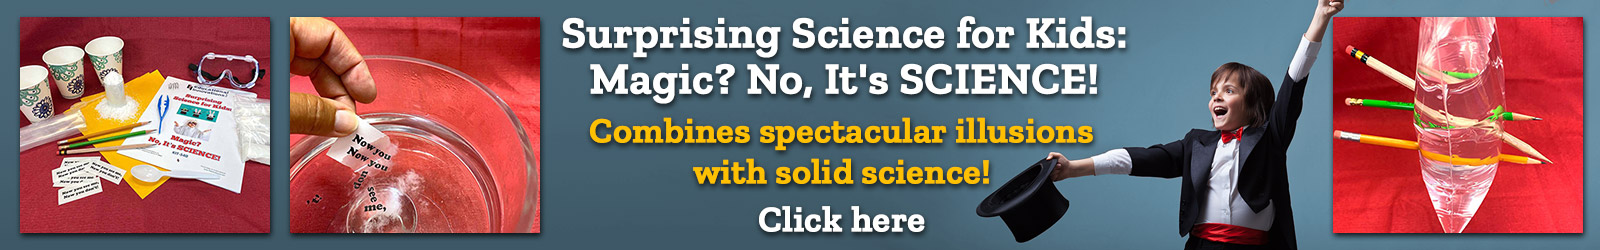 Surprising Science for Kids: Magic? No, It's SCIENCE! Combines spectacular illusions with solid science!